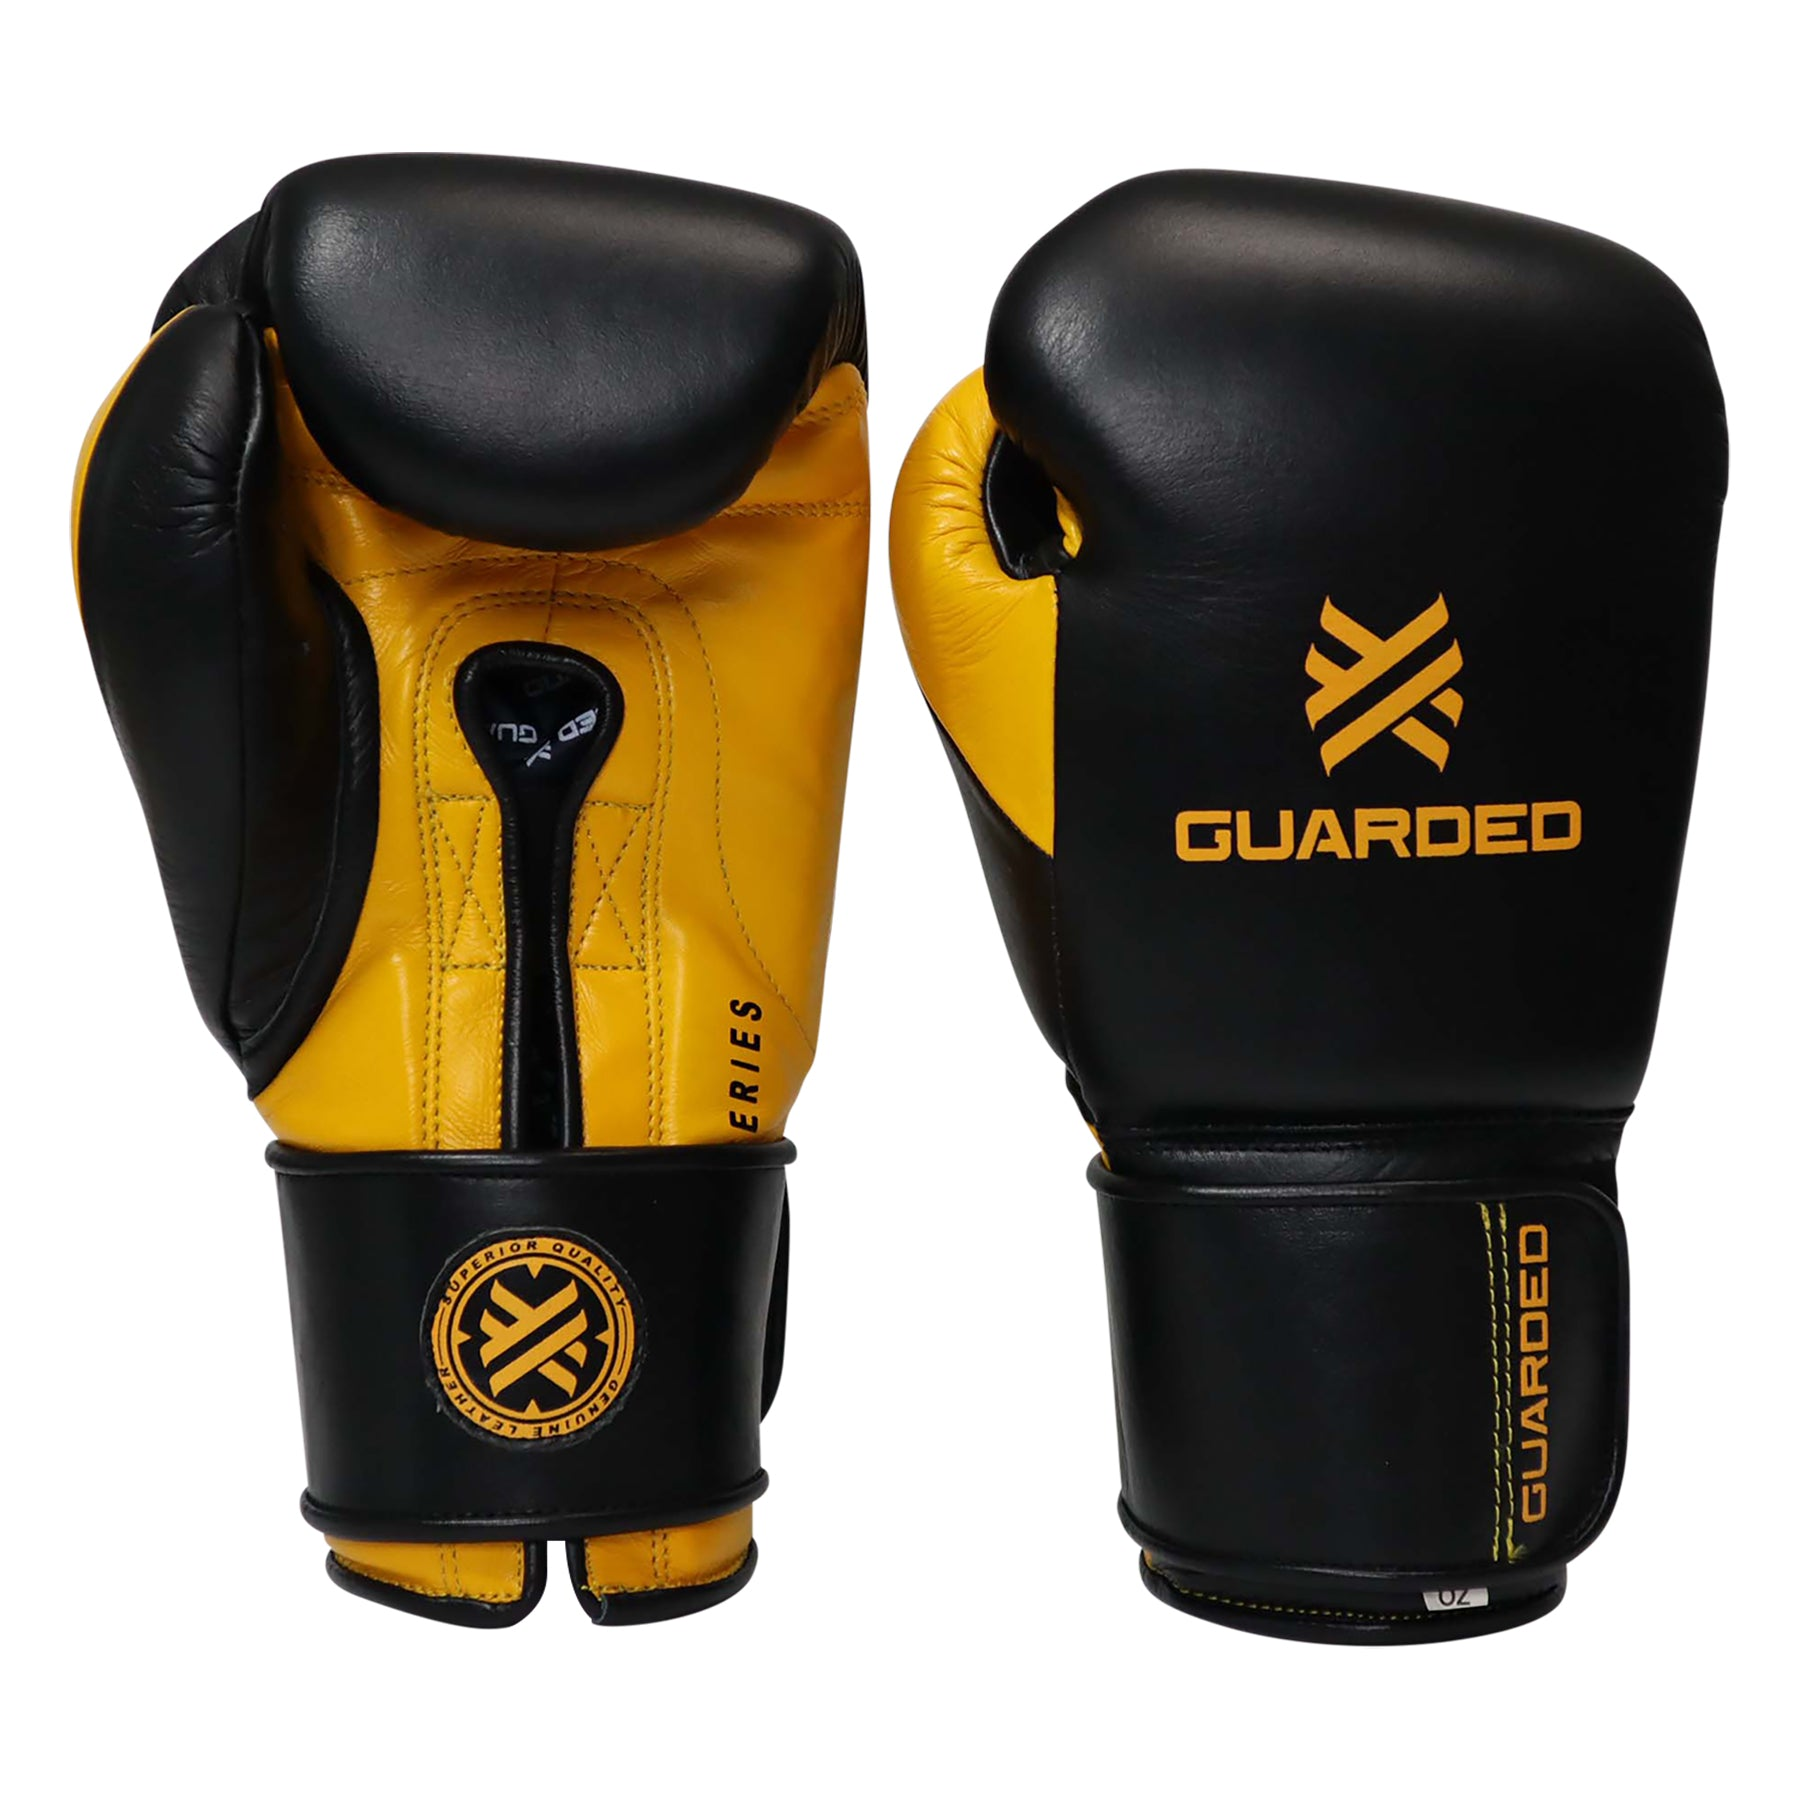 Shop boxing equipment